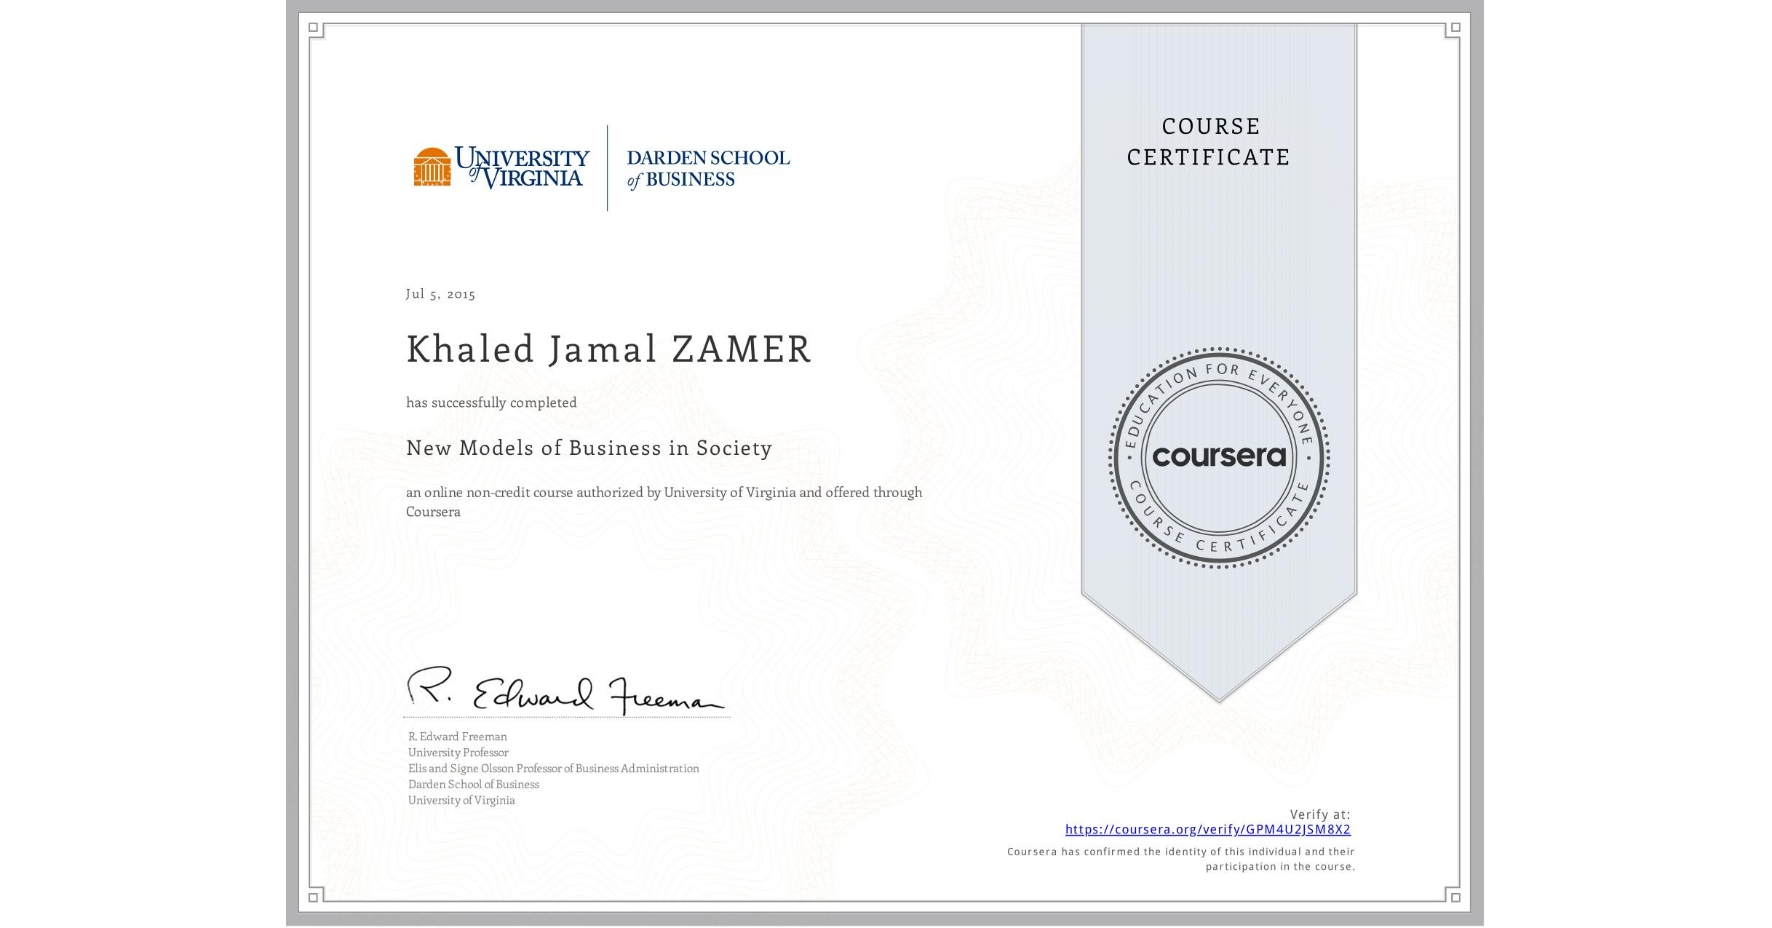 View certificate for Khaled Jamal ZAMER, New Models of Business in Society, an online non-credit course authorized by University of Virginia and offered through Coursera